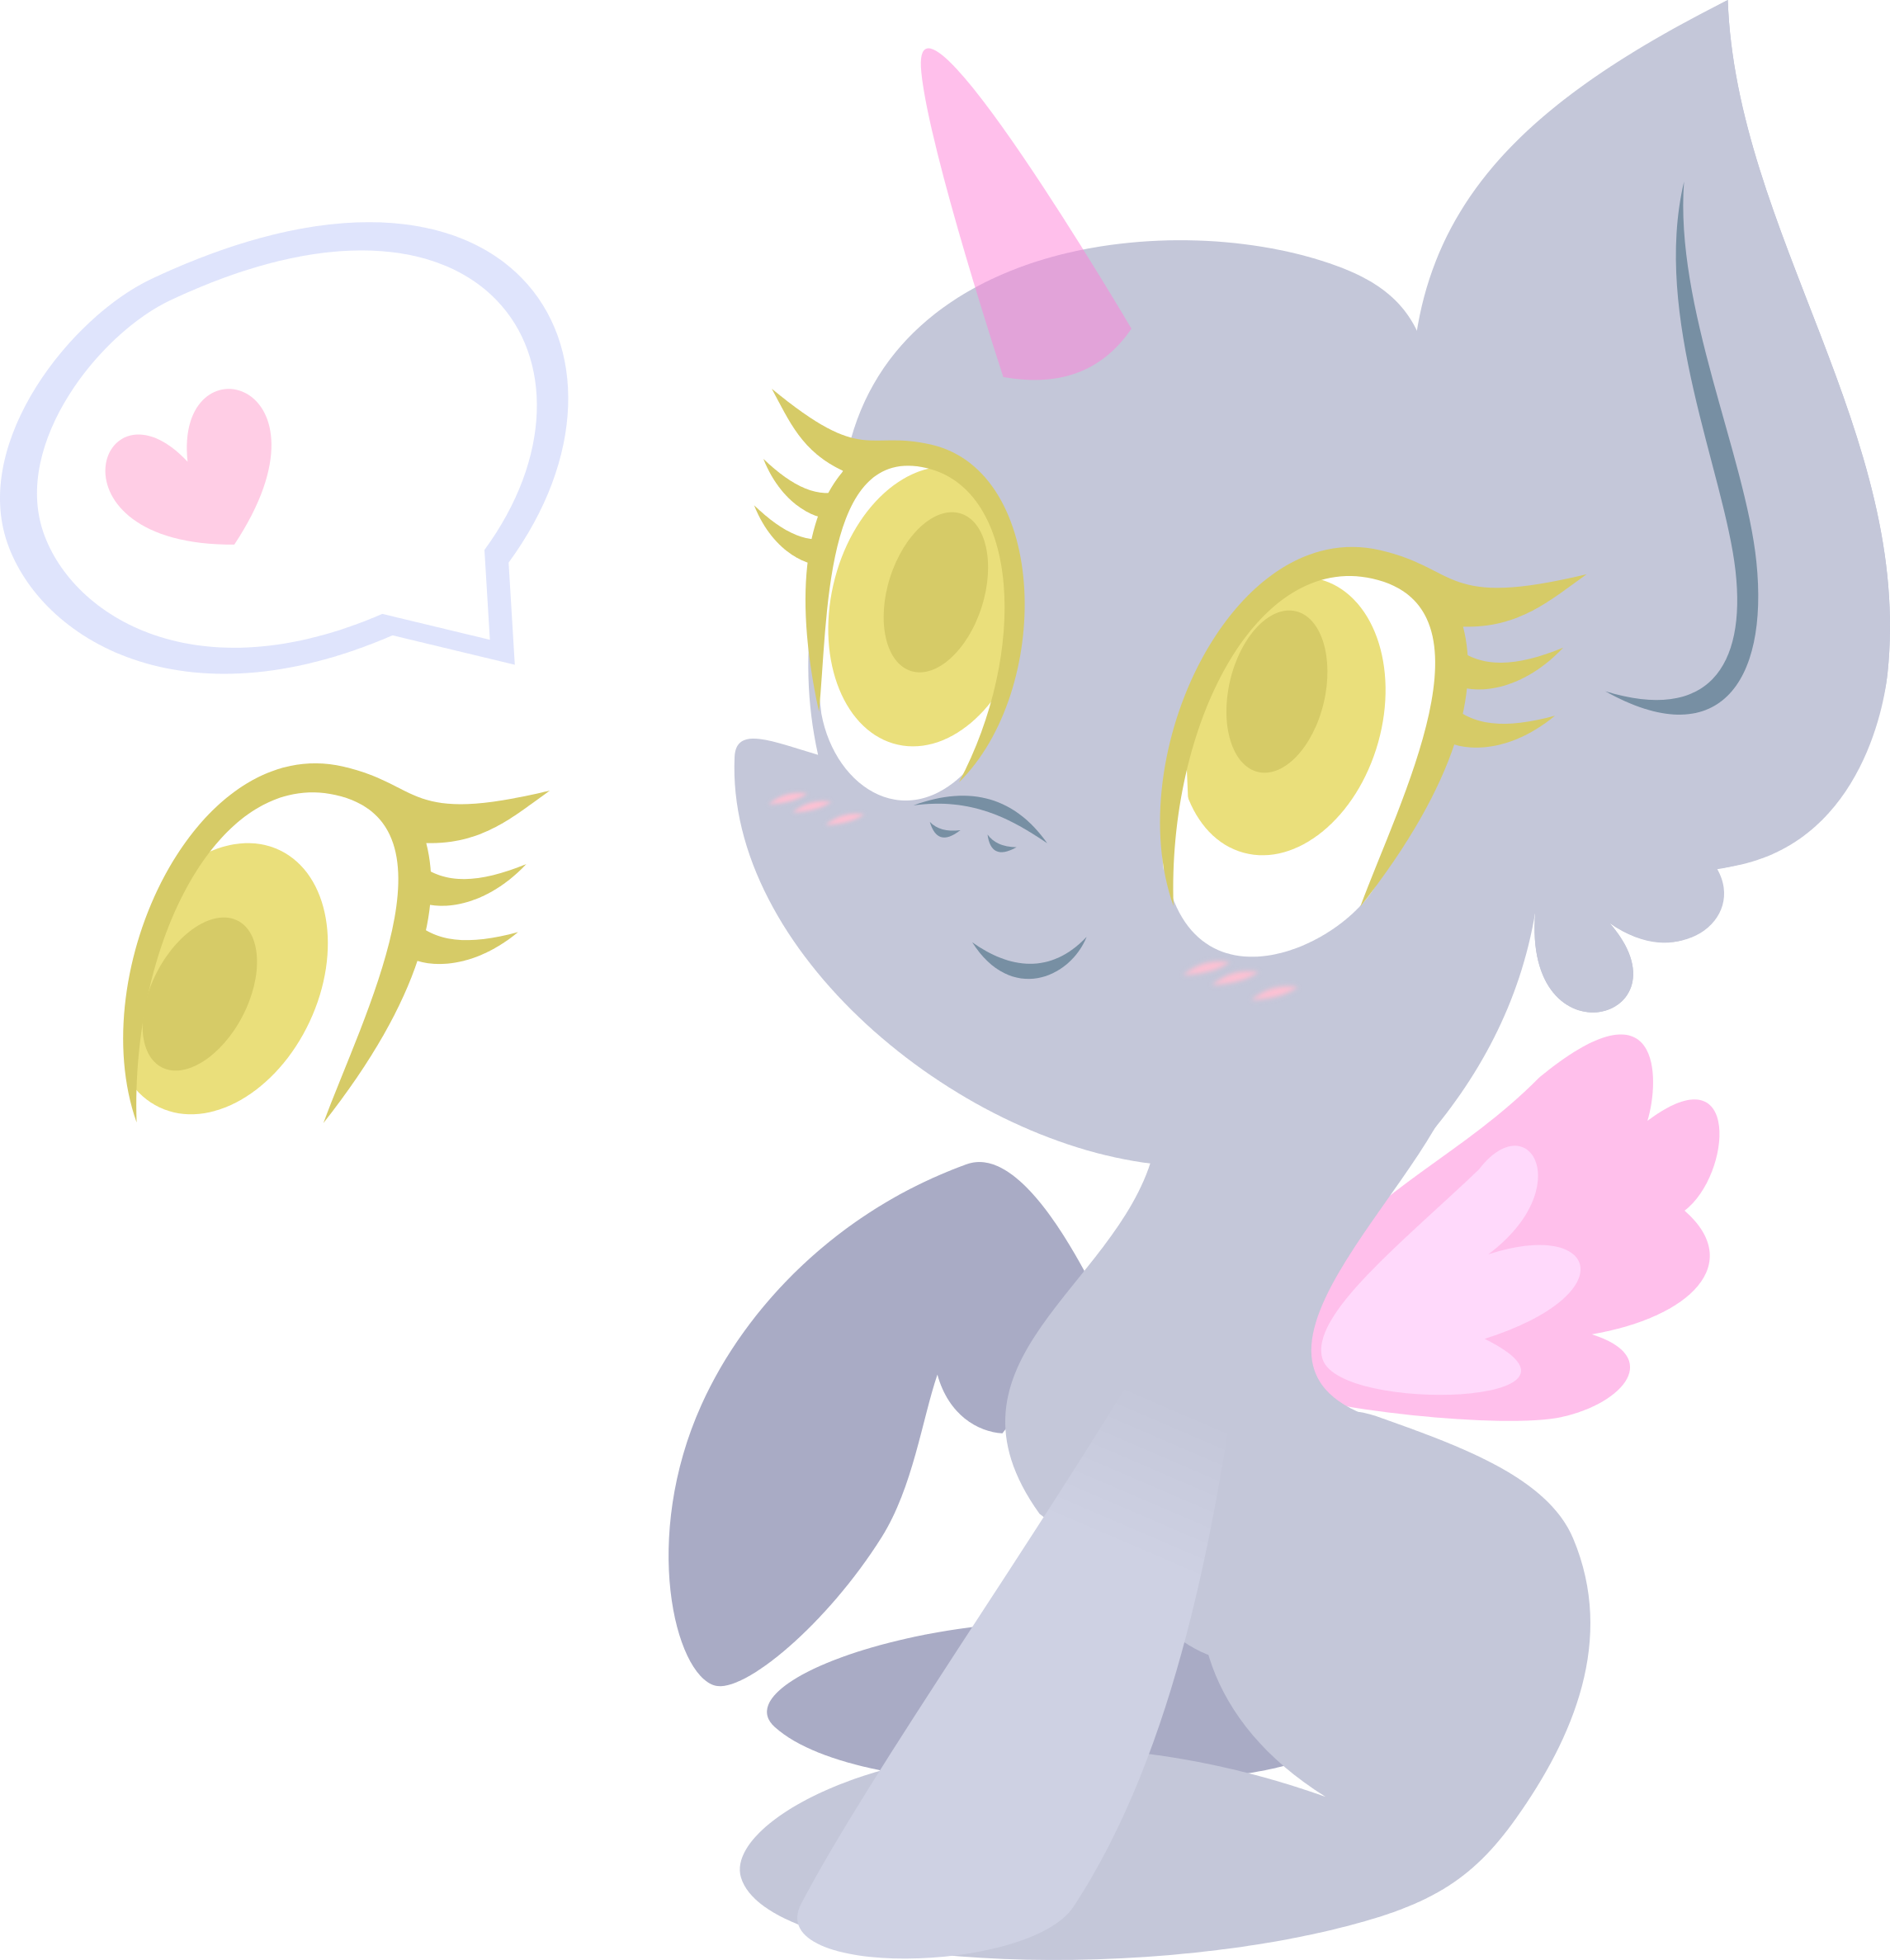 Mlp Base: Cute chibi pony by DarkPinkMonster on DeviantArt